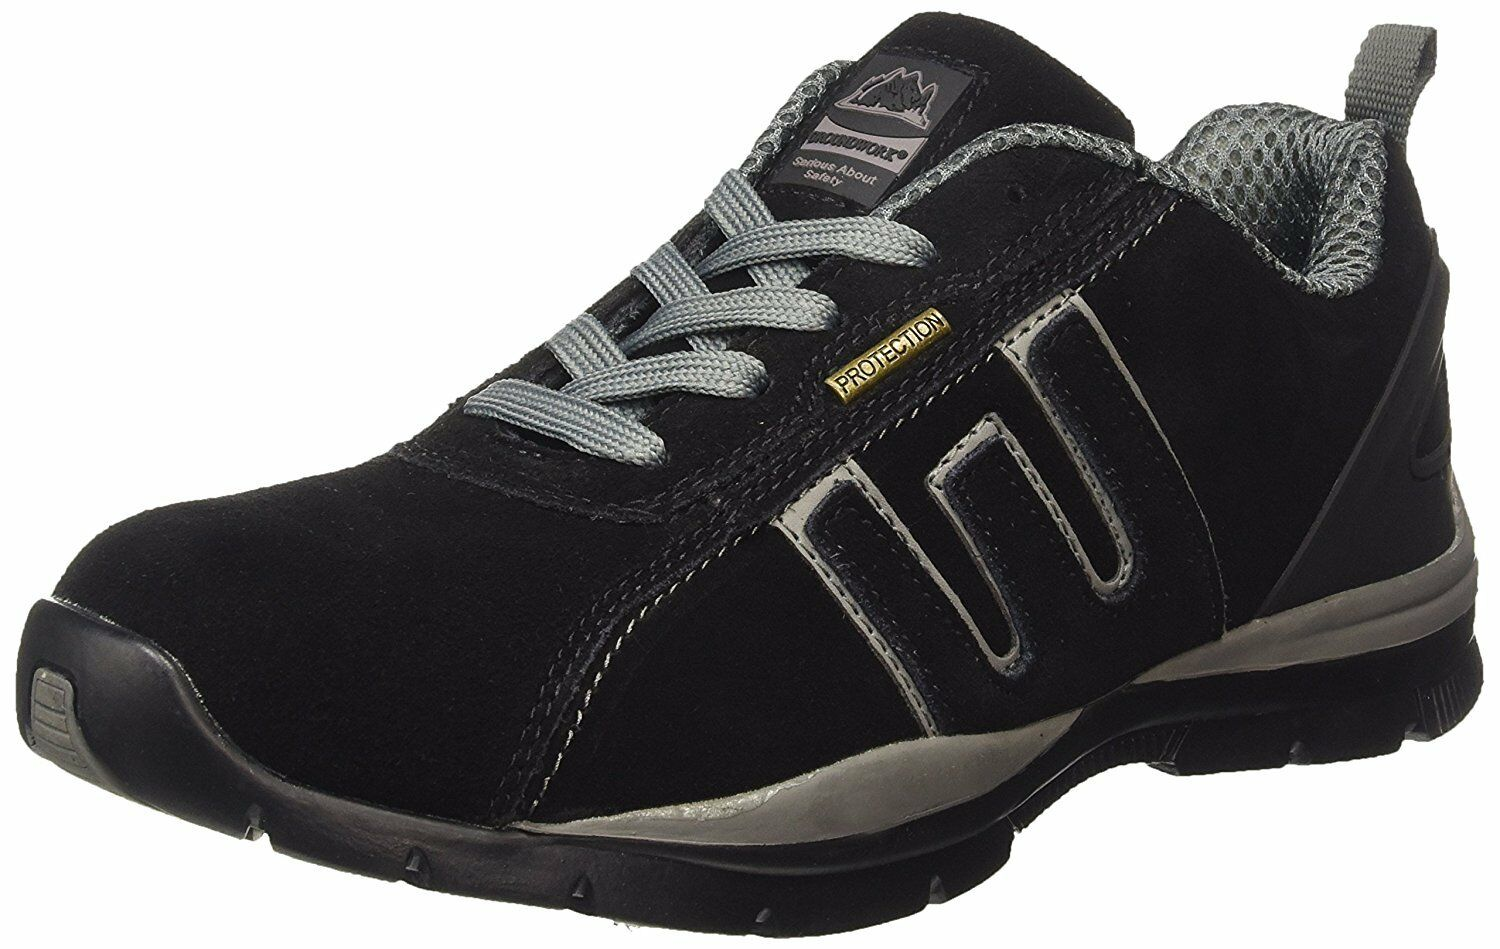 Herren GR86 LIGHTWEIGHT LEATHER UPPERS, UP STEEL TOE CAP LACE UP UPPERS, SAFETY TRAINER, SIZE 5e4f48